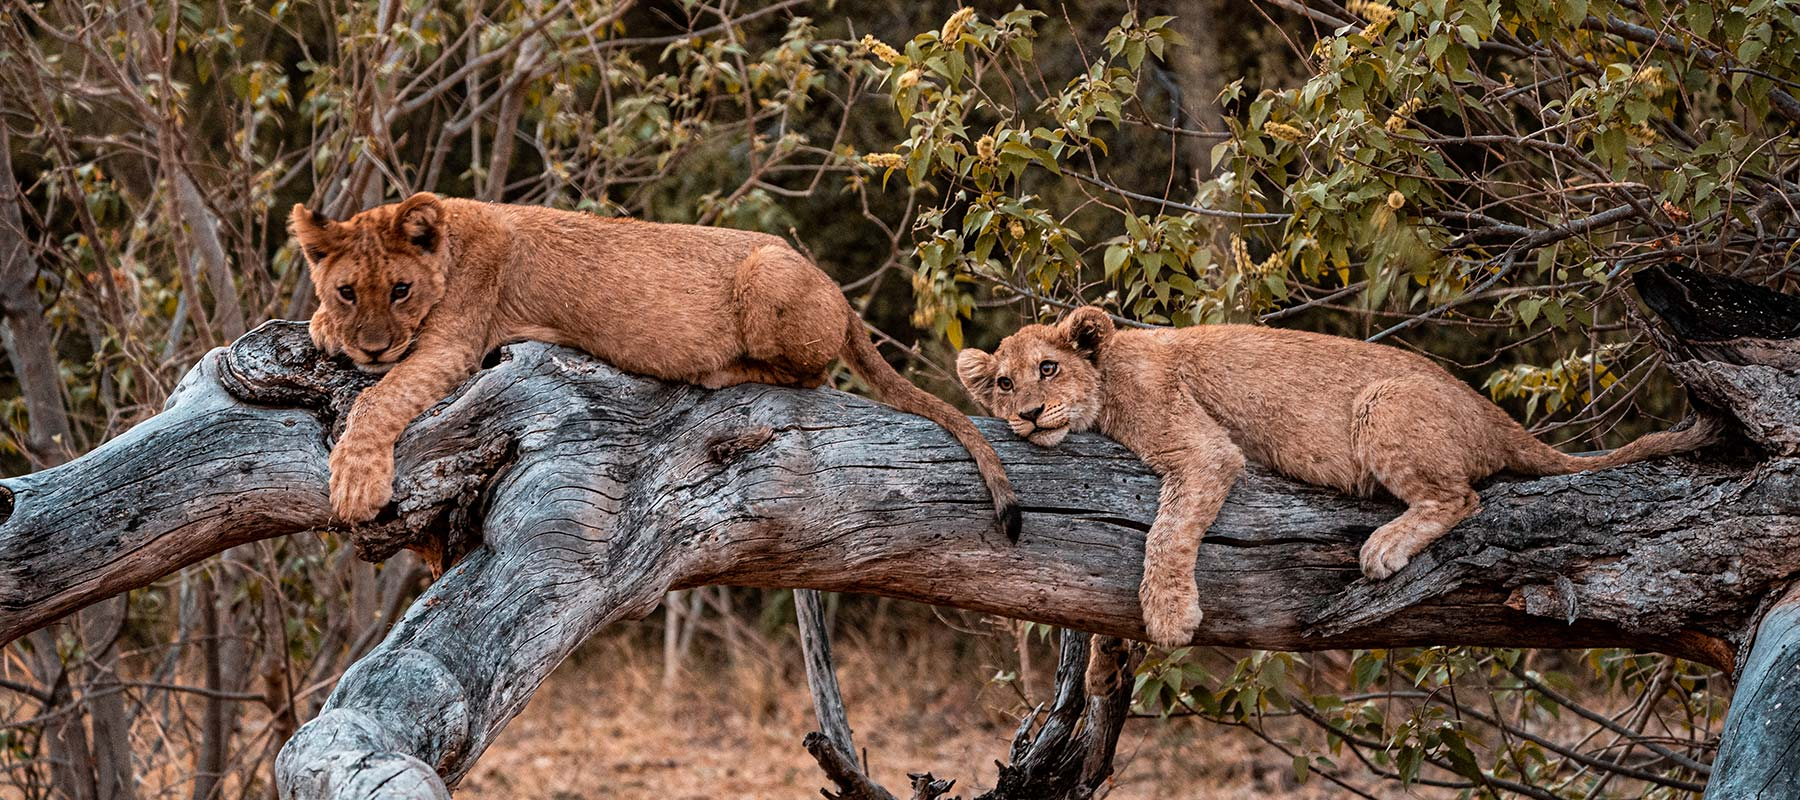 Lion cubs resting on a branch in Botswana, Africa. Cheetah, cubs & the most incredible dinner setting